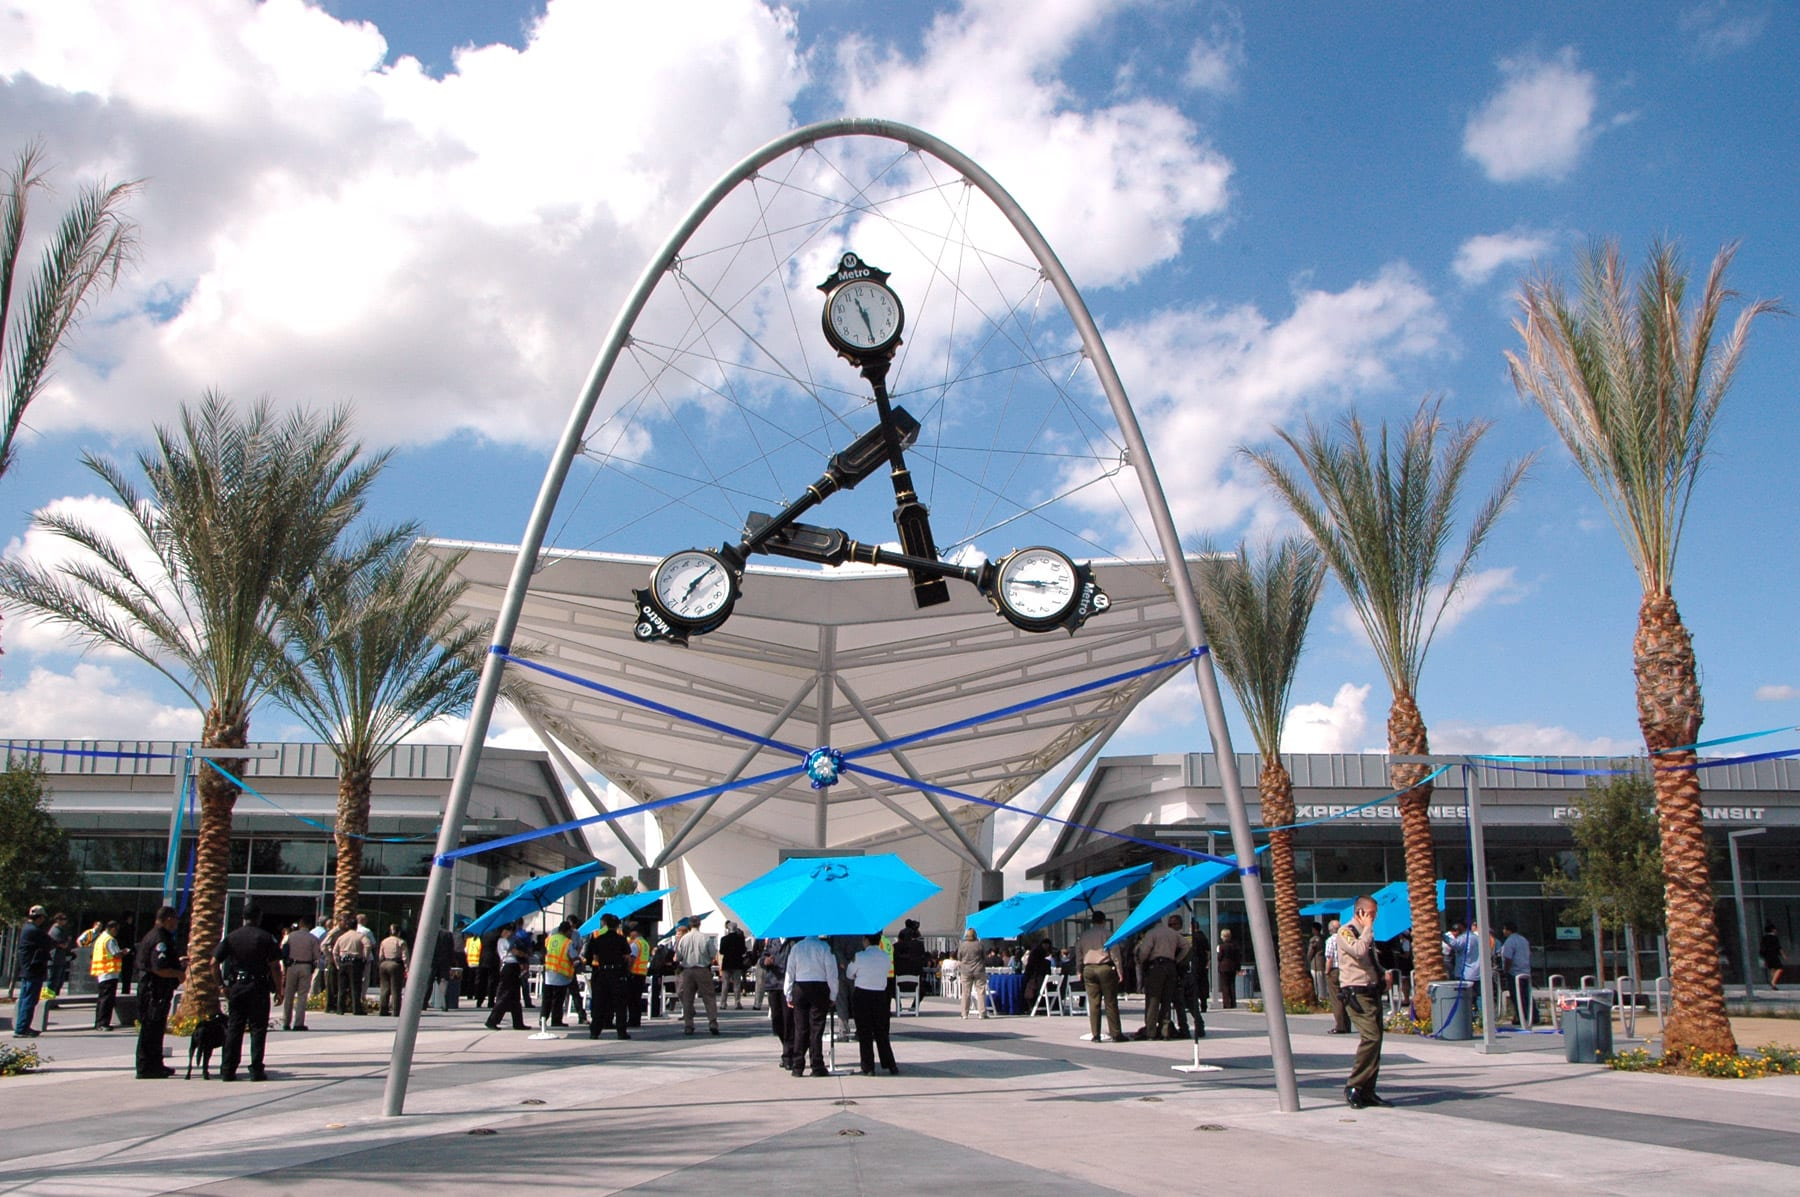 Time Piece: Iconic sculpture by Donald Lipski frames the entrance to the new El Monte Station, which opens to the public this Sunday. Photo by Luis Inzunza.